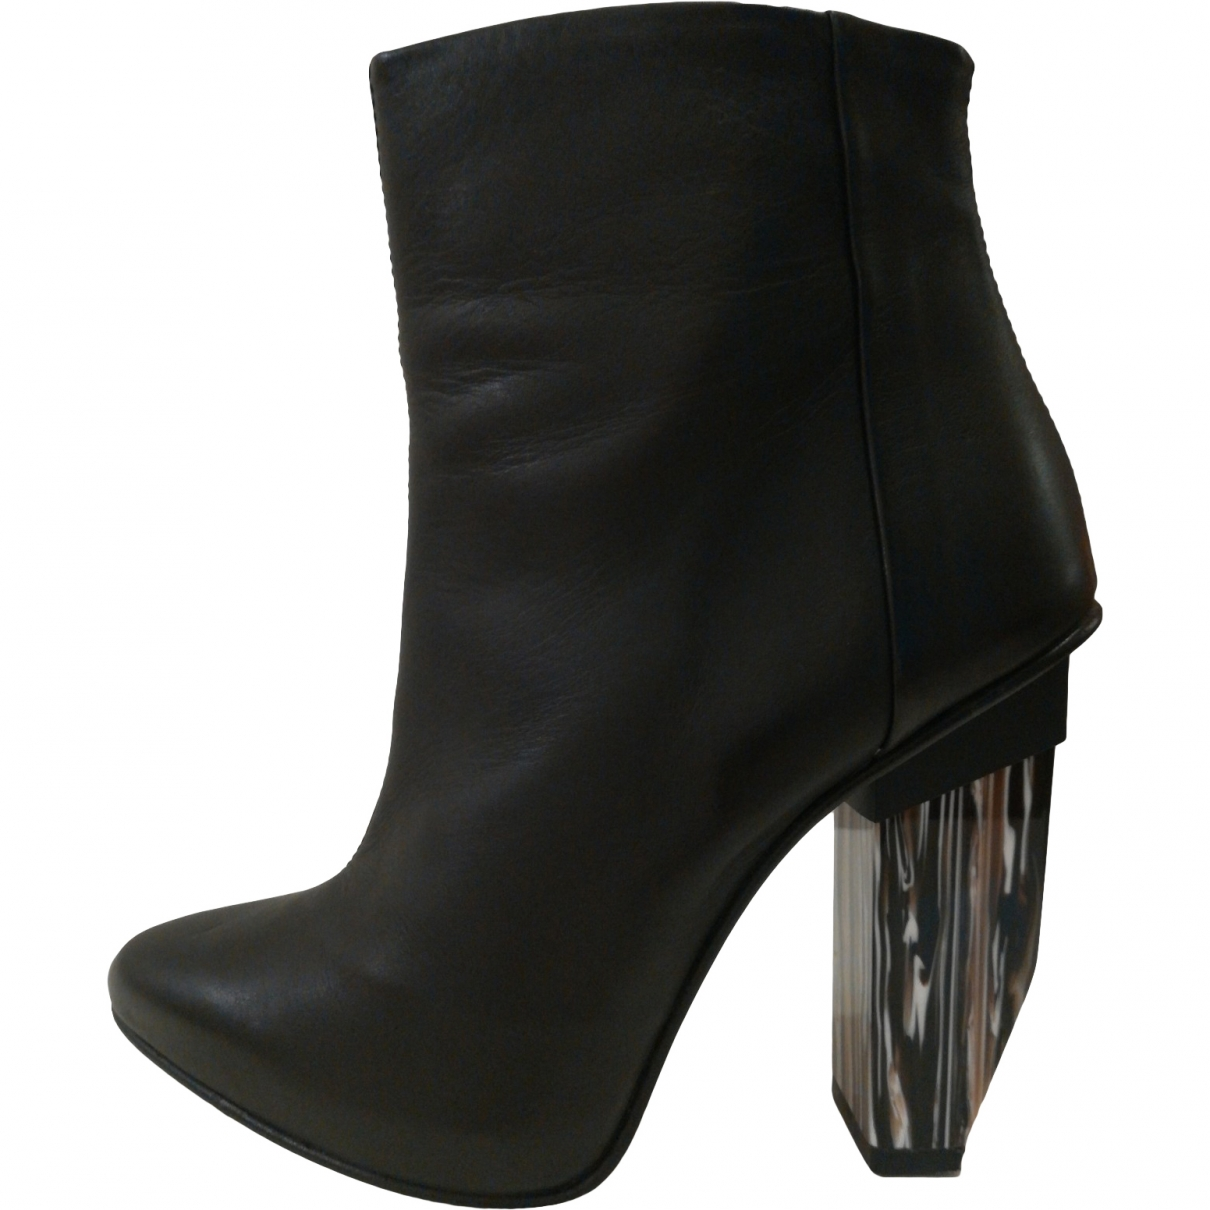 Miista \N Black Leather Ankle boots for Women 36 EU